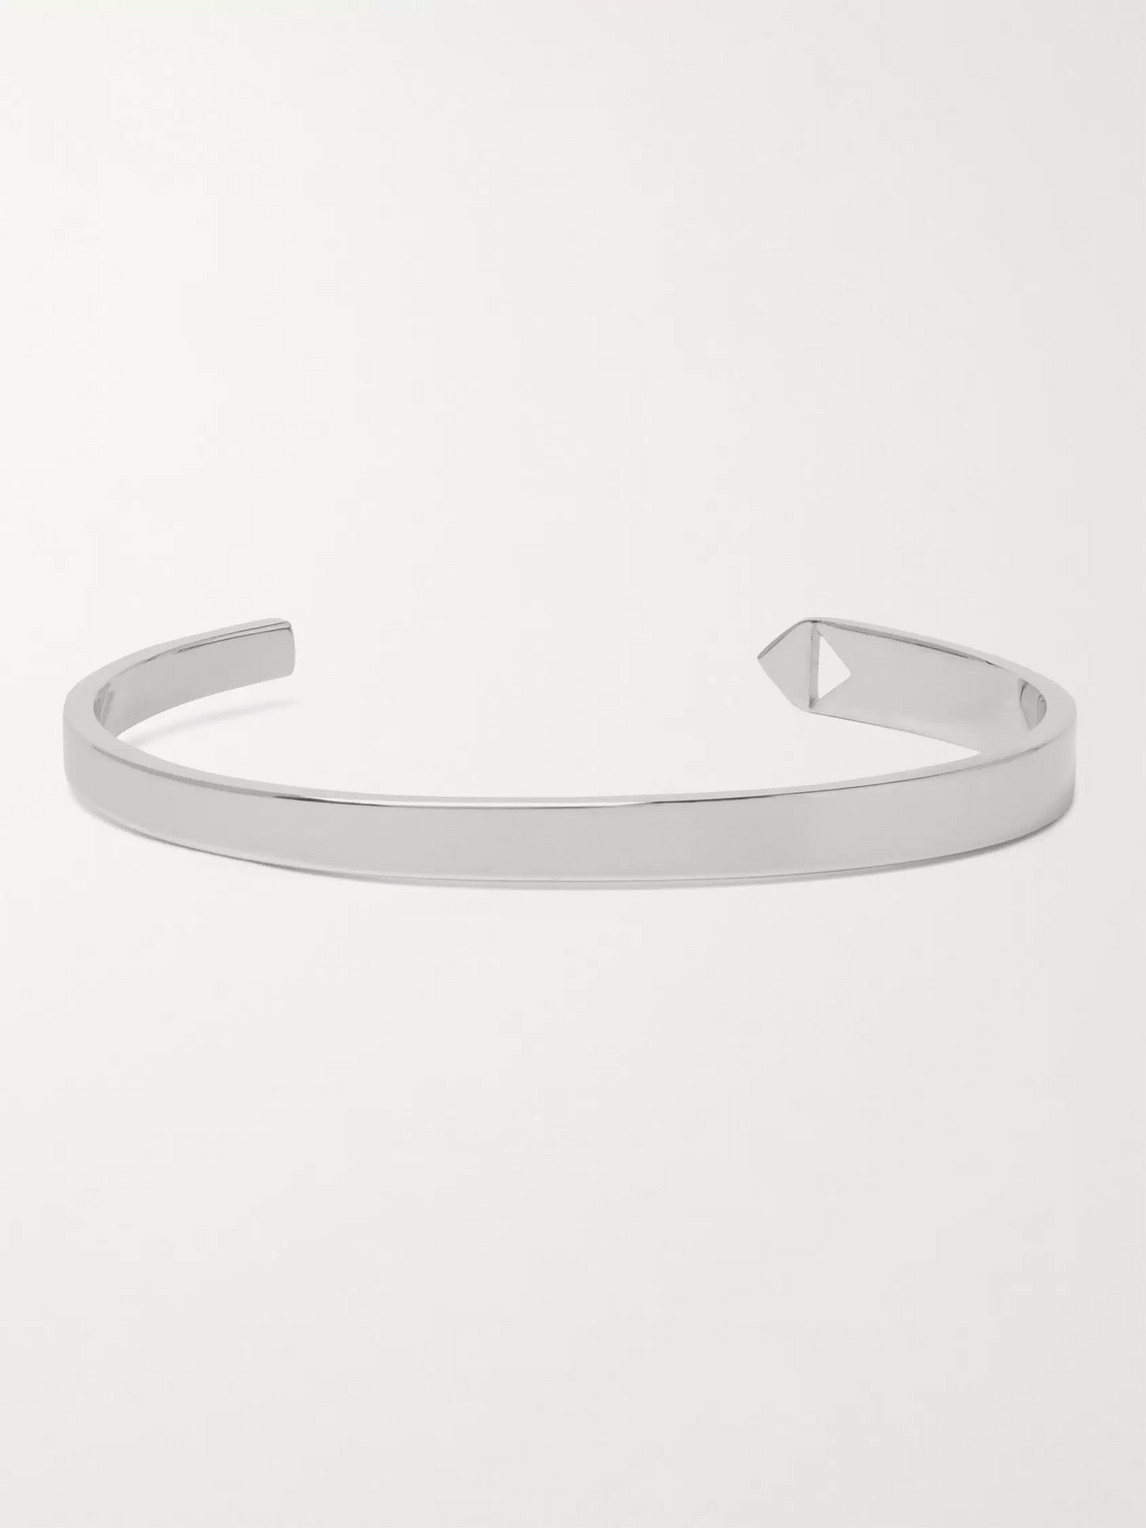 Paul Smith Silver-plated Cuff